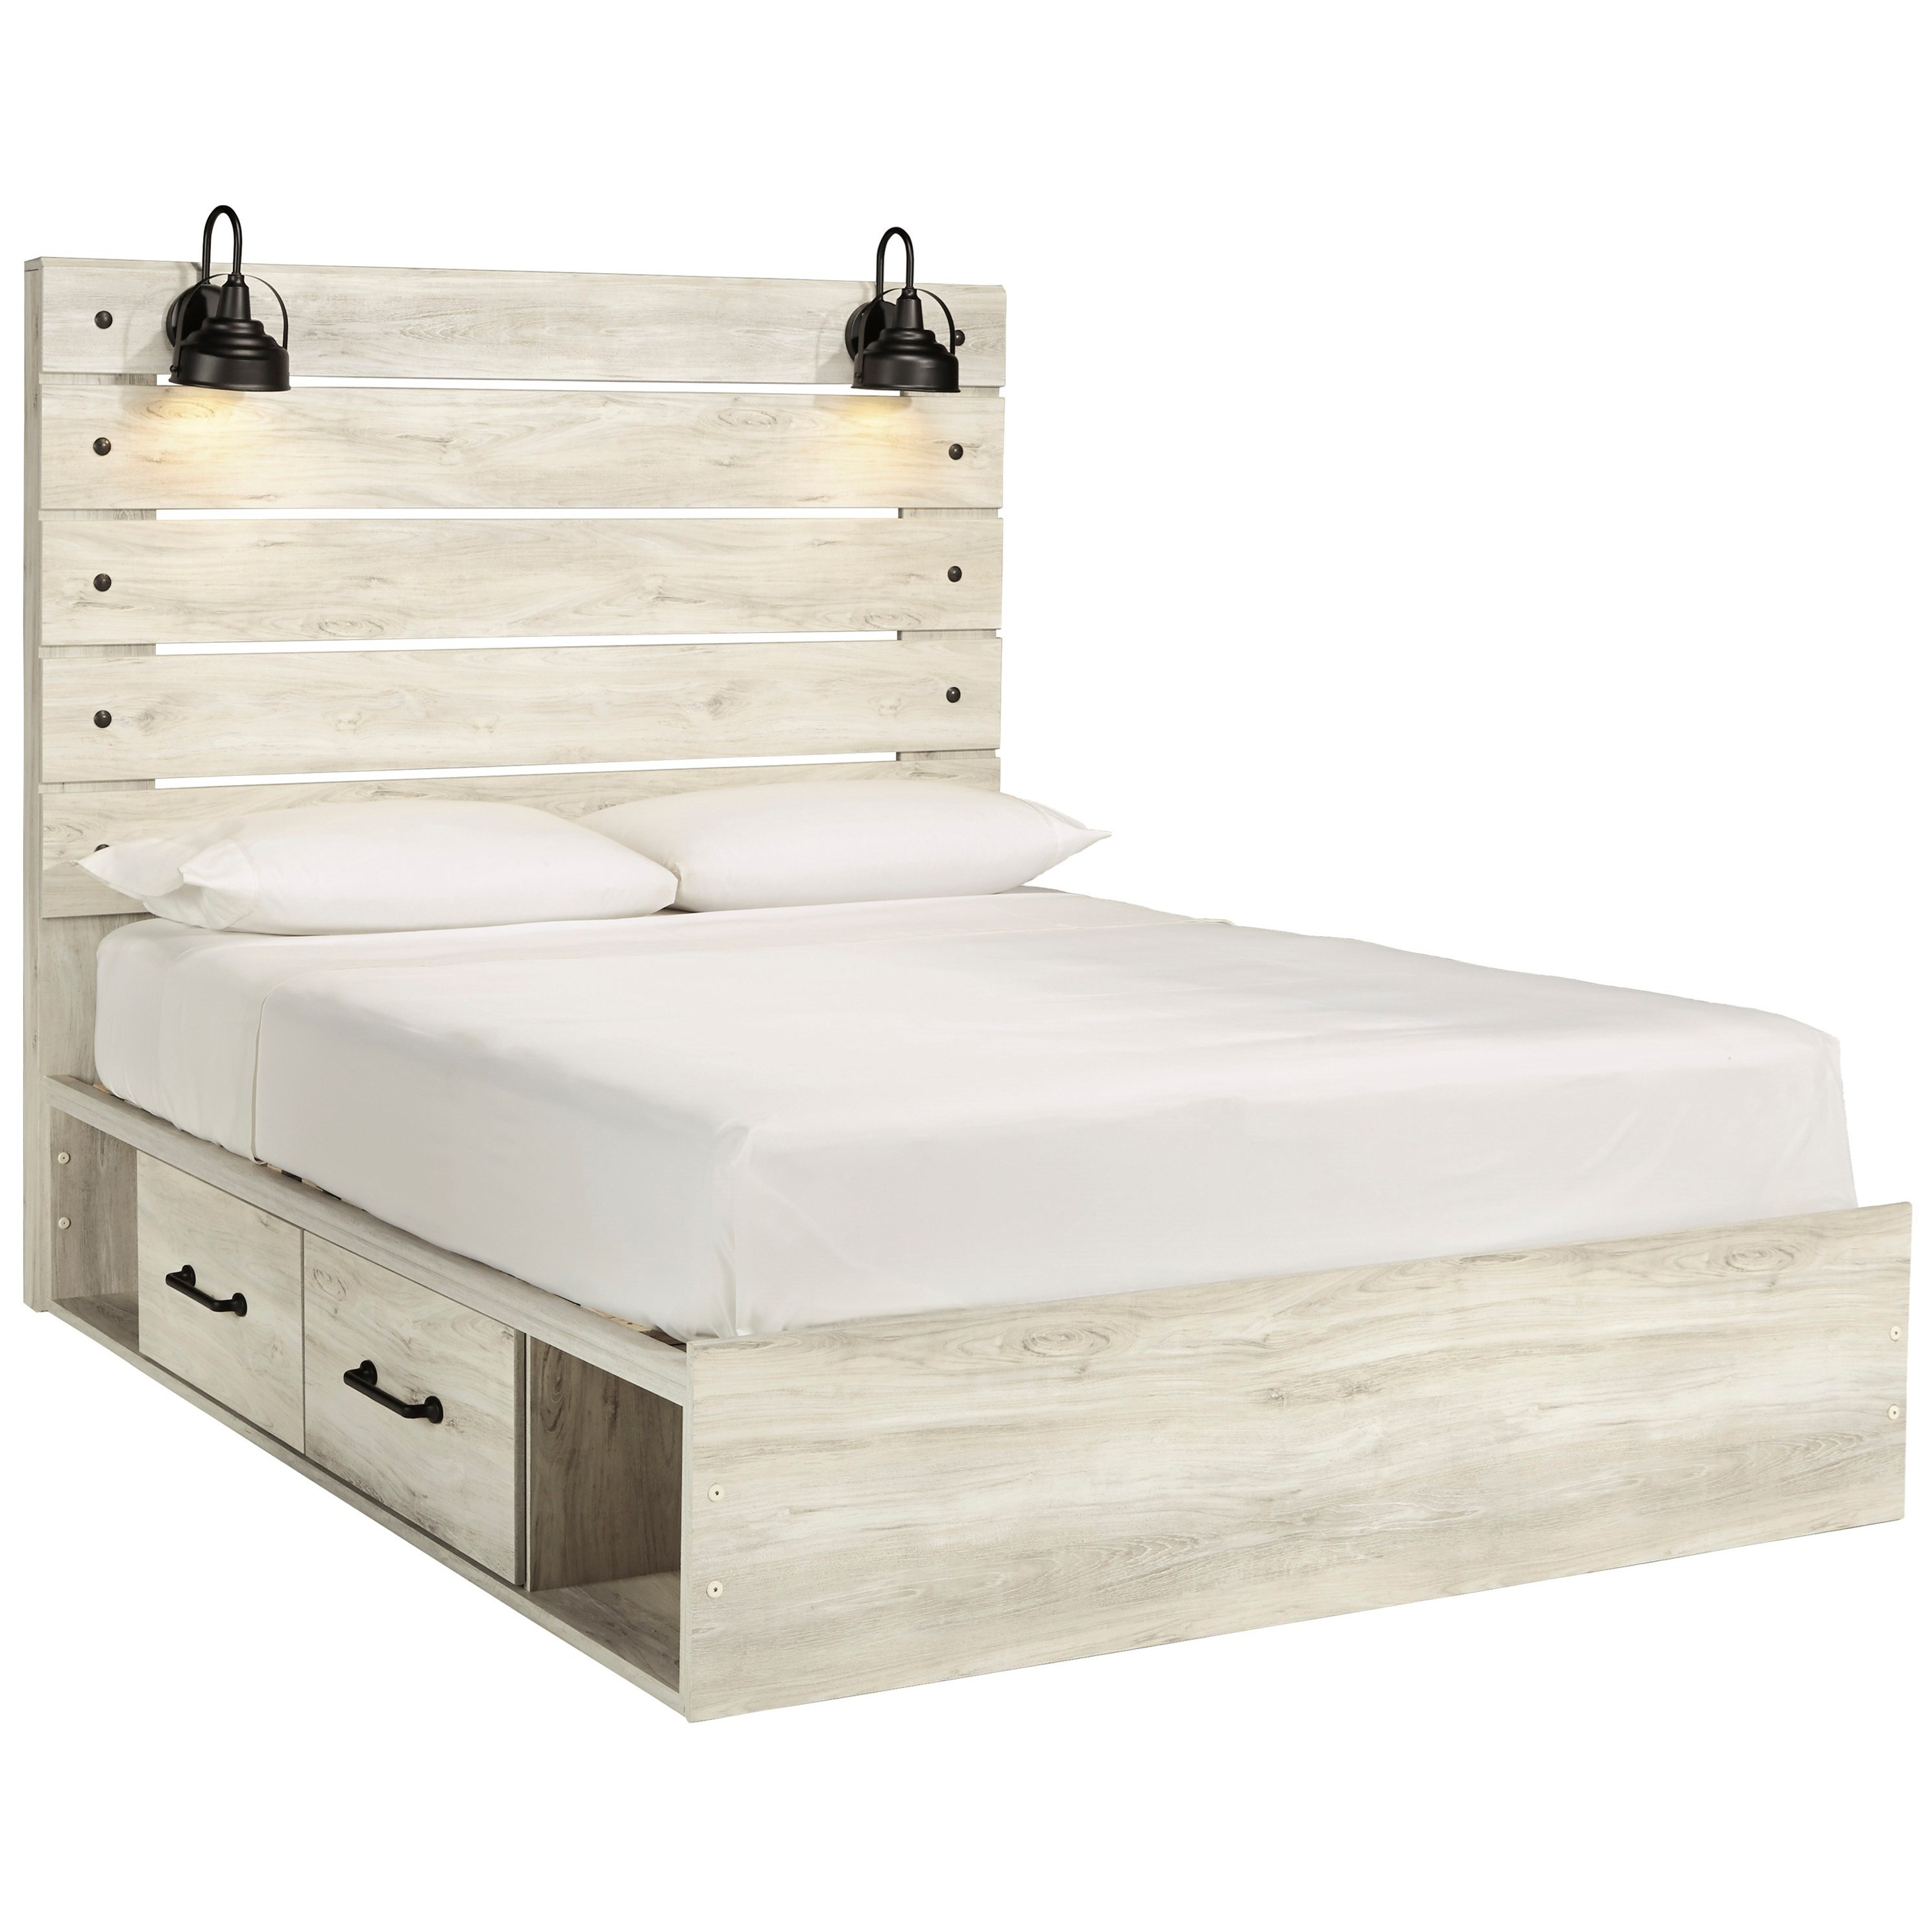 Picture of: Ashley Furniture Signature Design Cambeck Rustic Queen Storage Bed With 2 Drawers Industrial Lights Del Sol Furniture Platform Beds Low Profile Beds